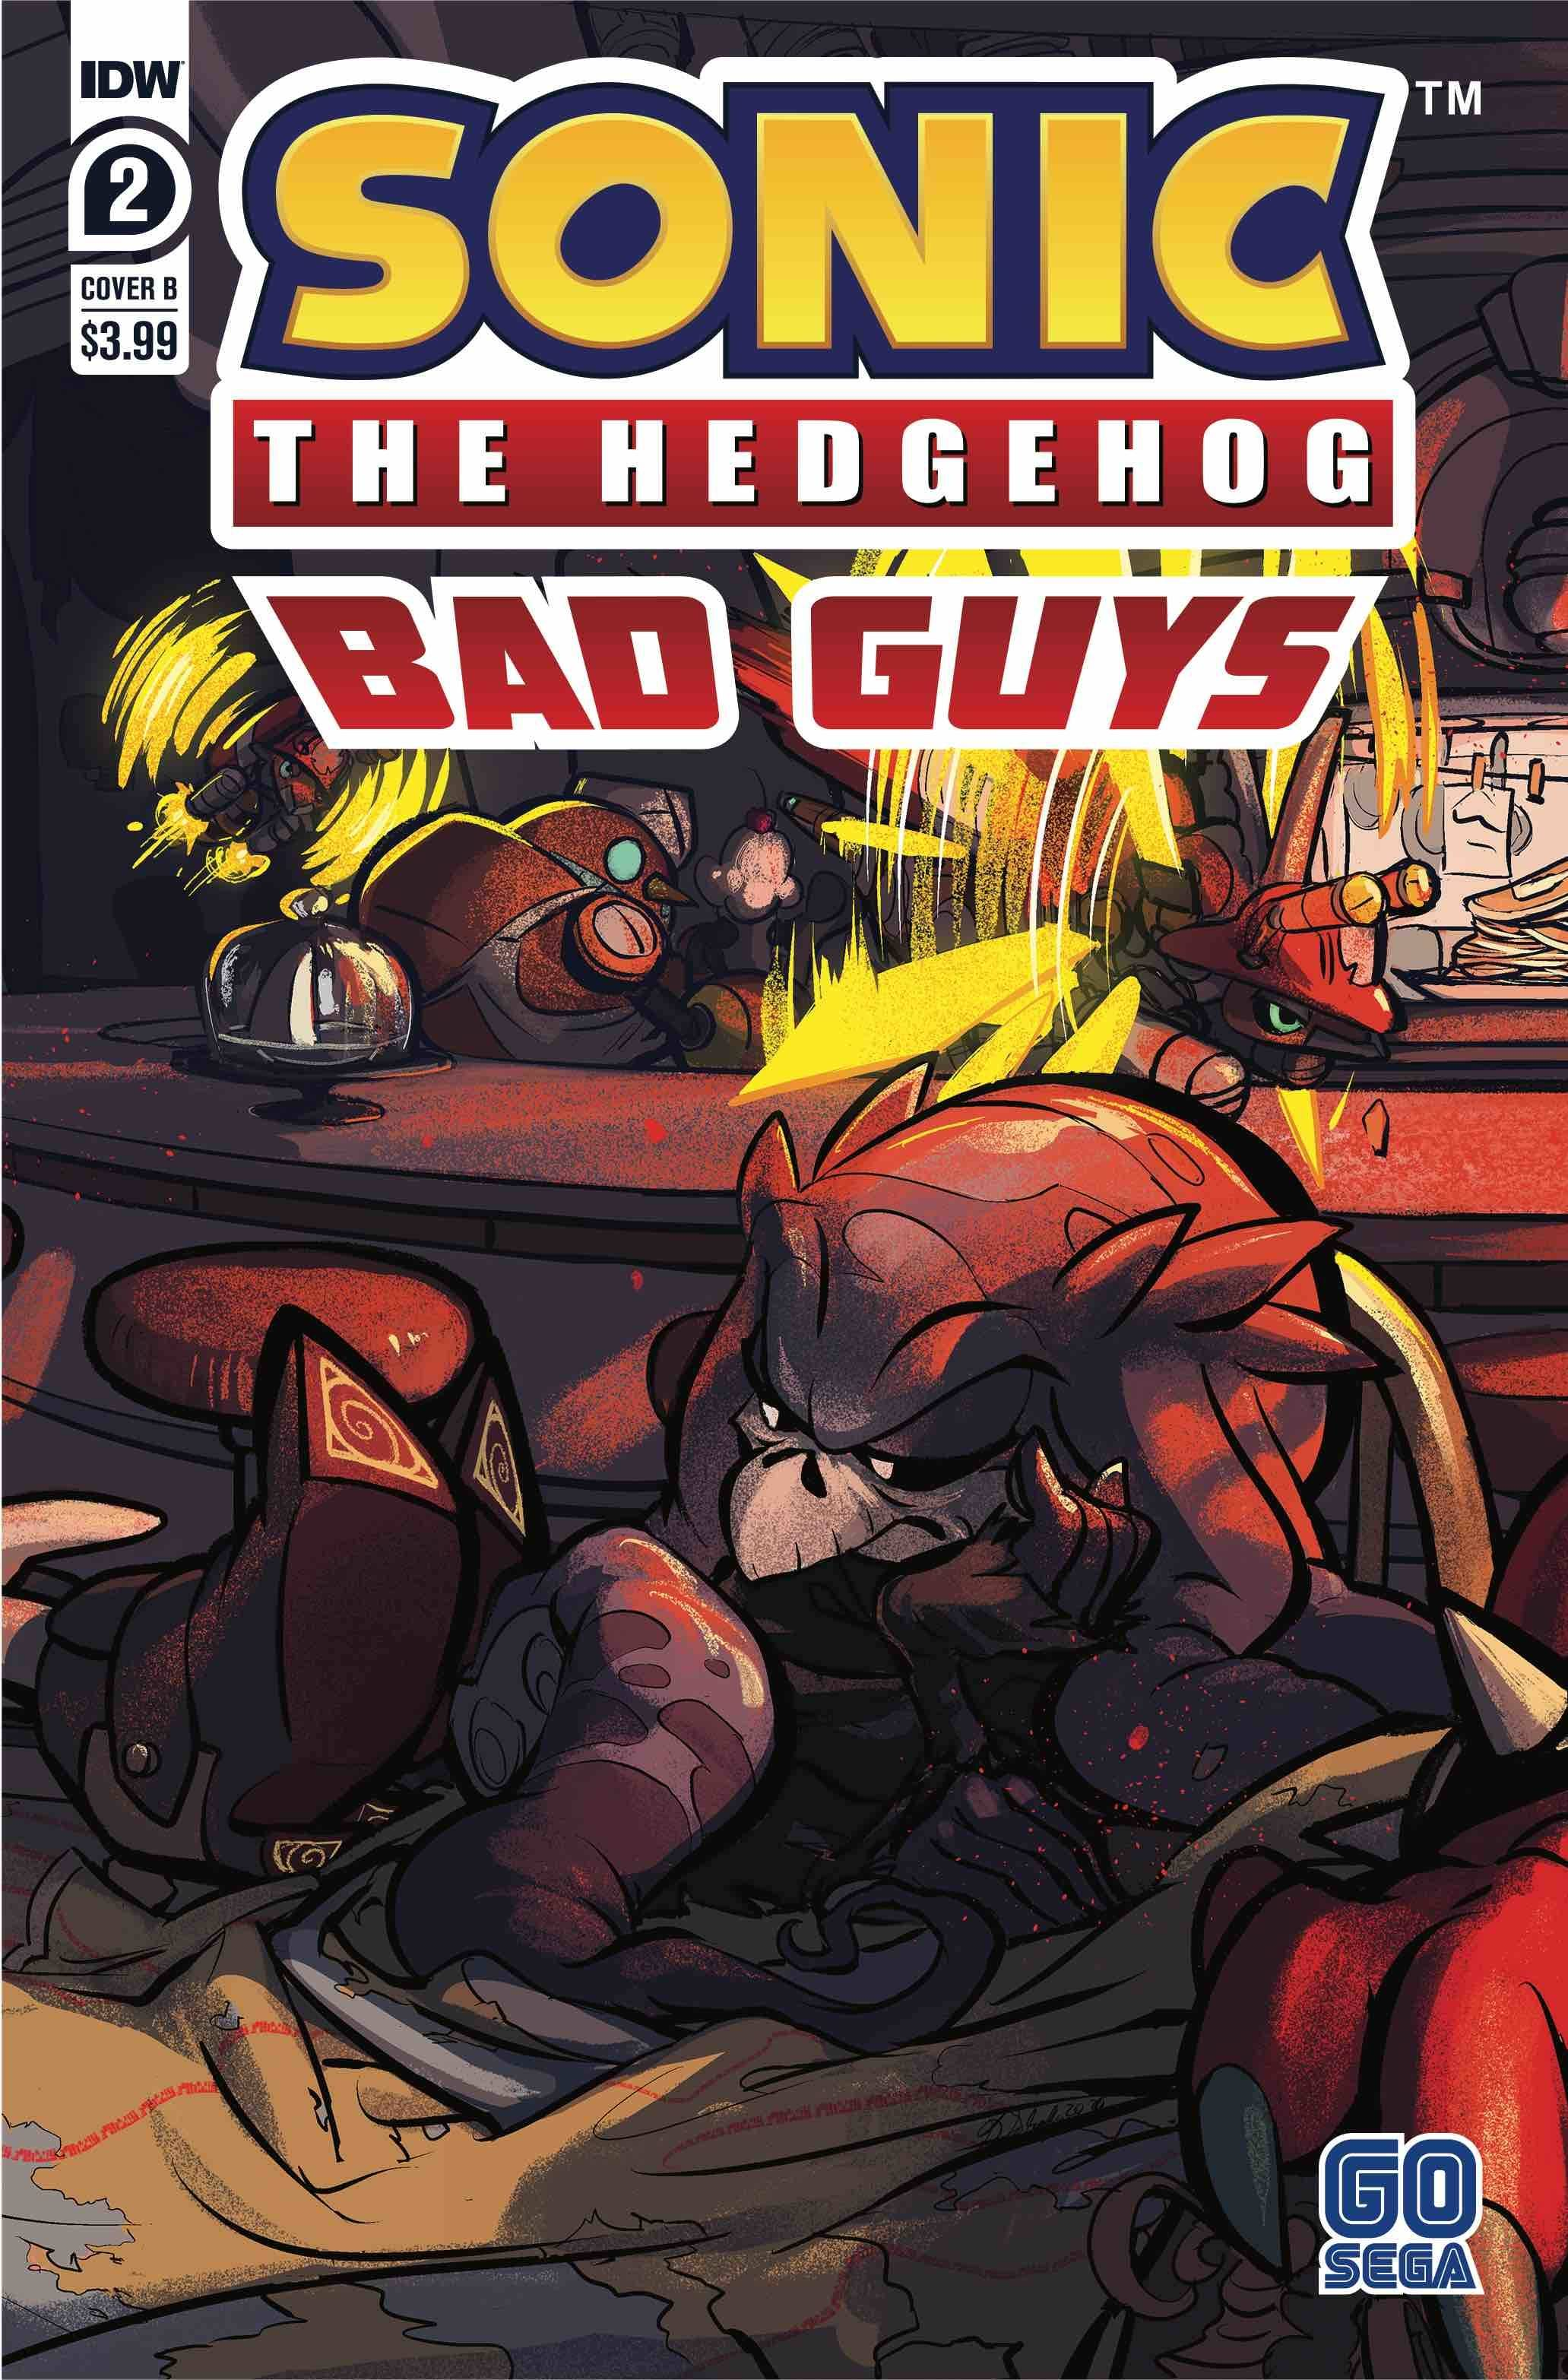 SONIC THE HEDGEHOG BAD GUYS #2 (OF 4) CVR B SKELLY